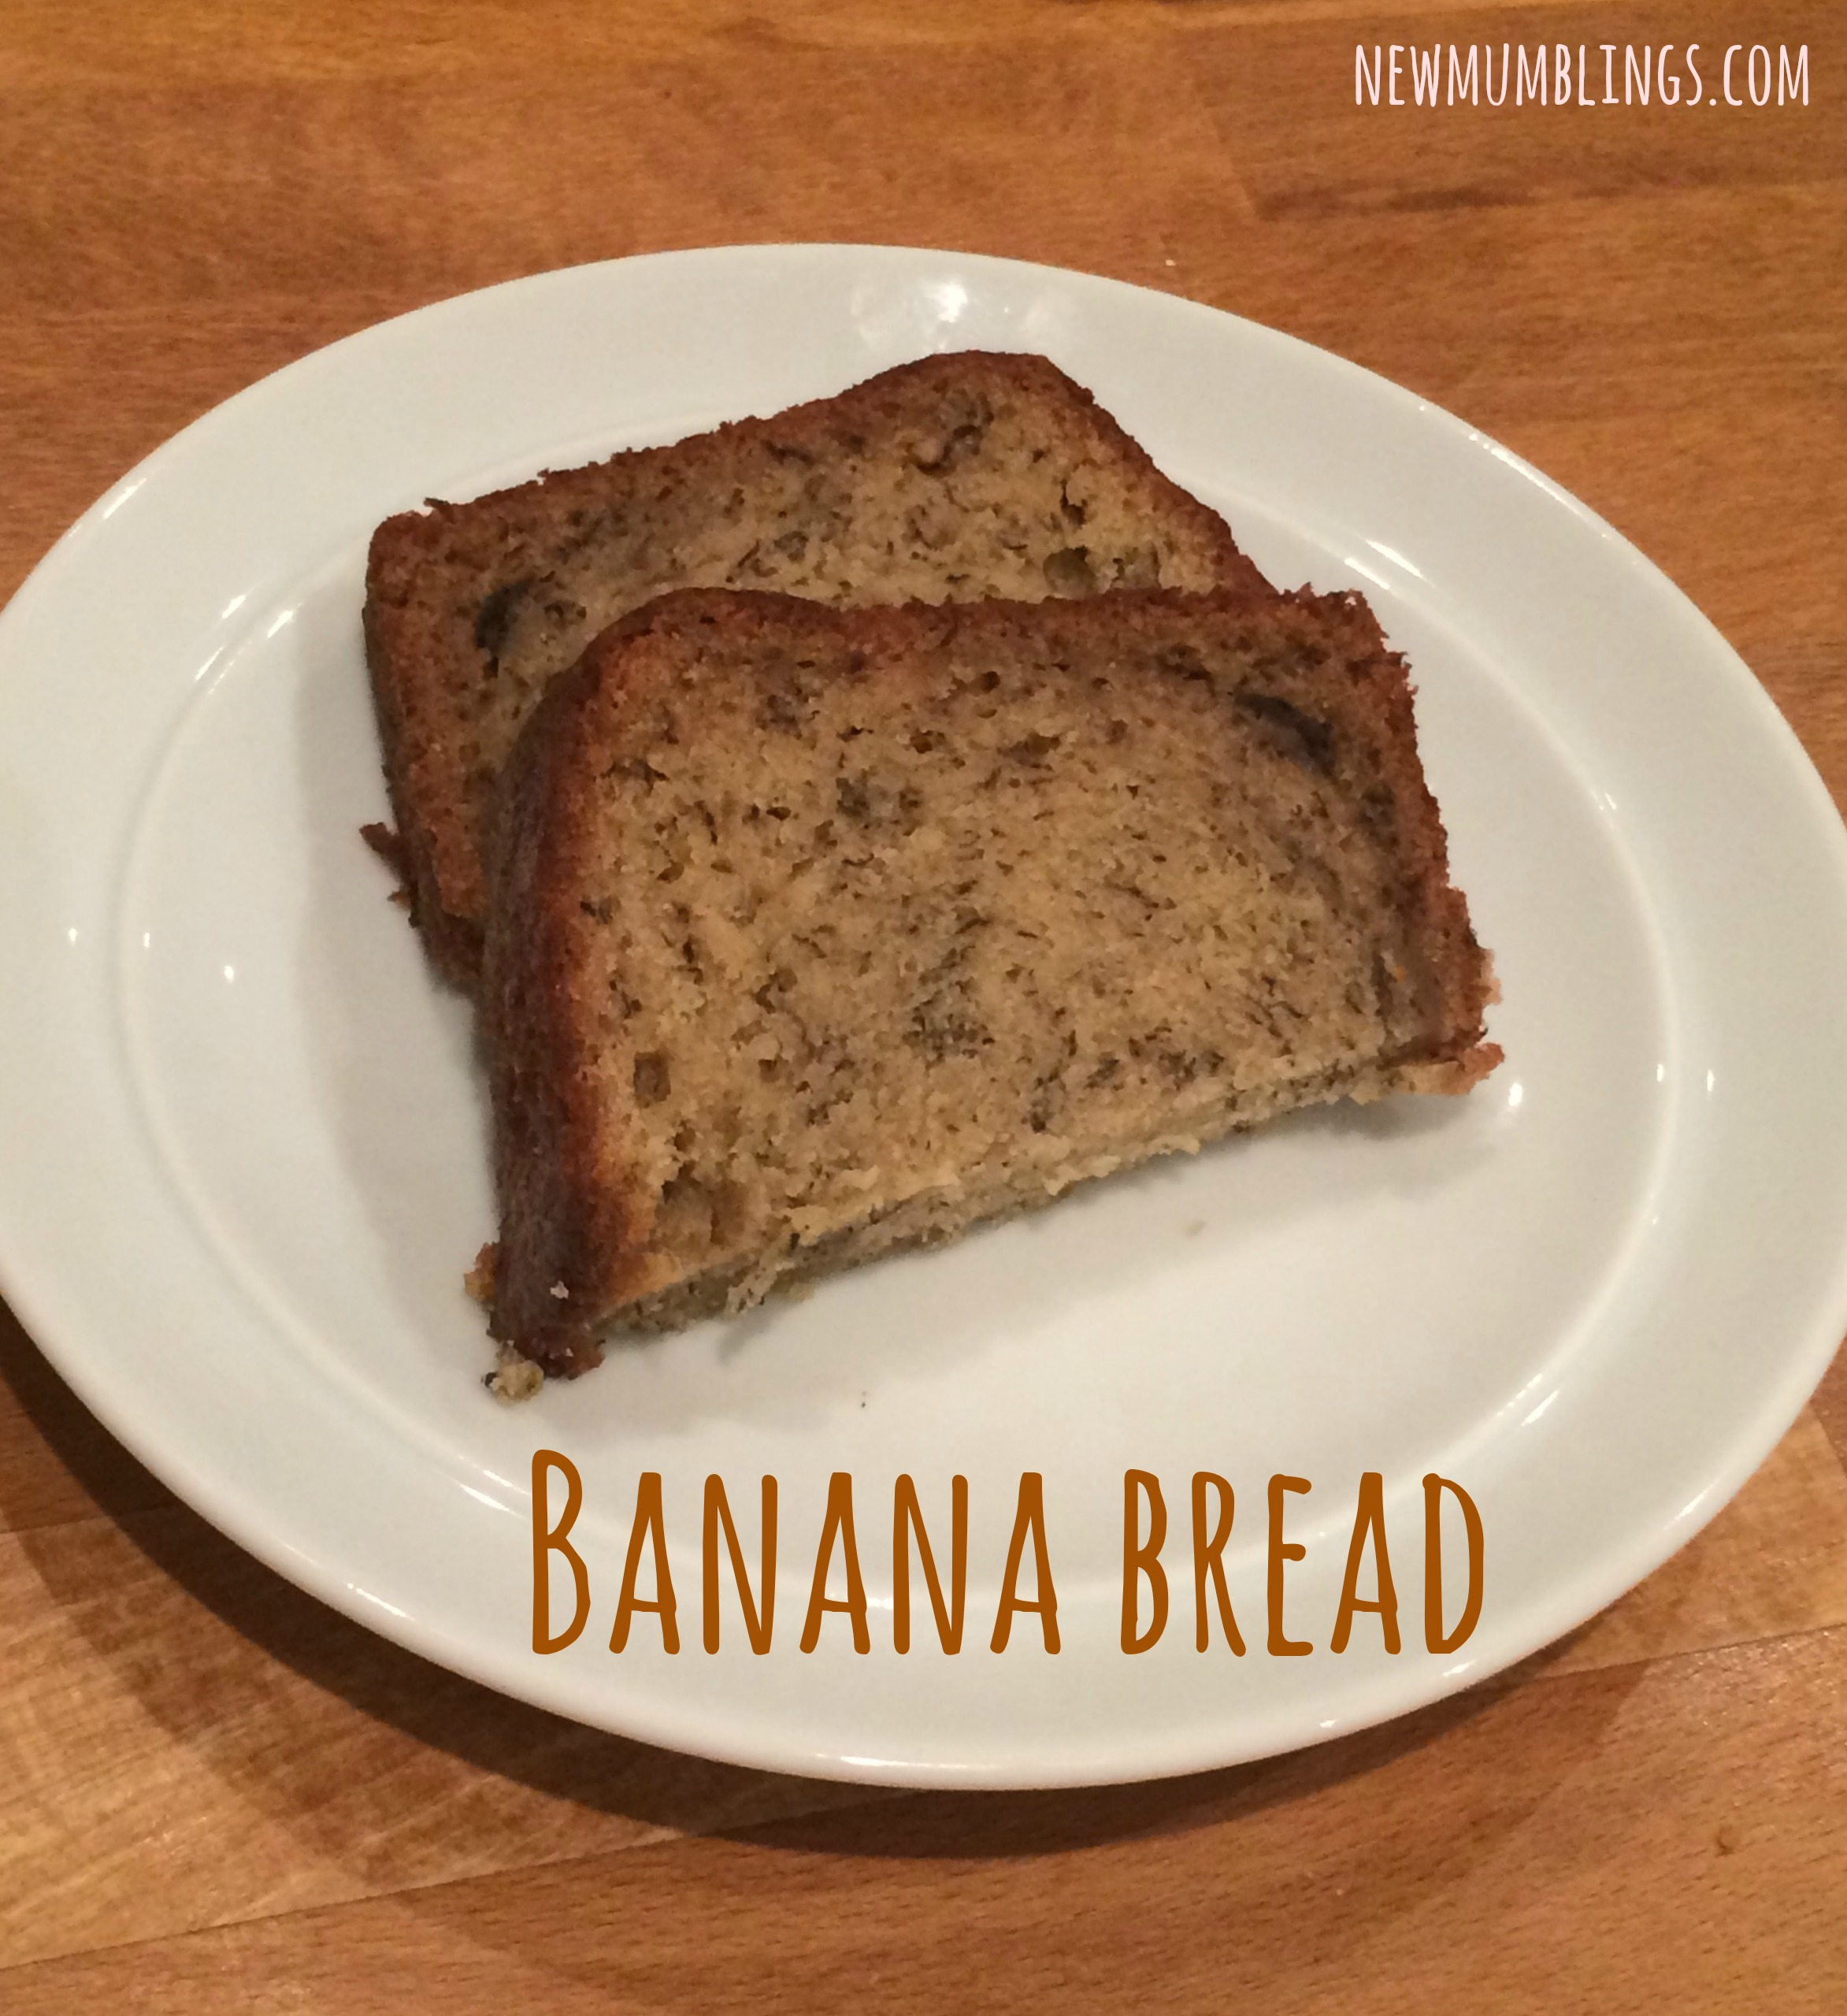 Simple banana bread delicious and uses up bananas new mumblings banana bread slices forumfinder Choice Image